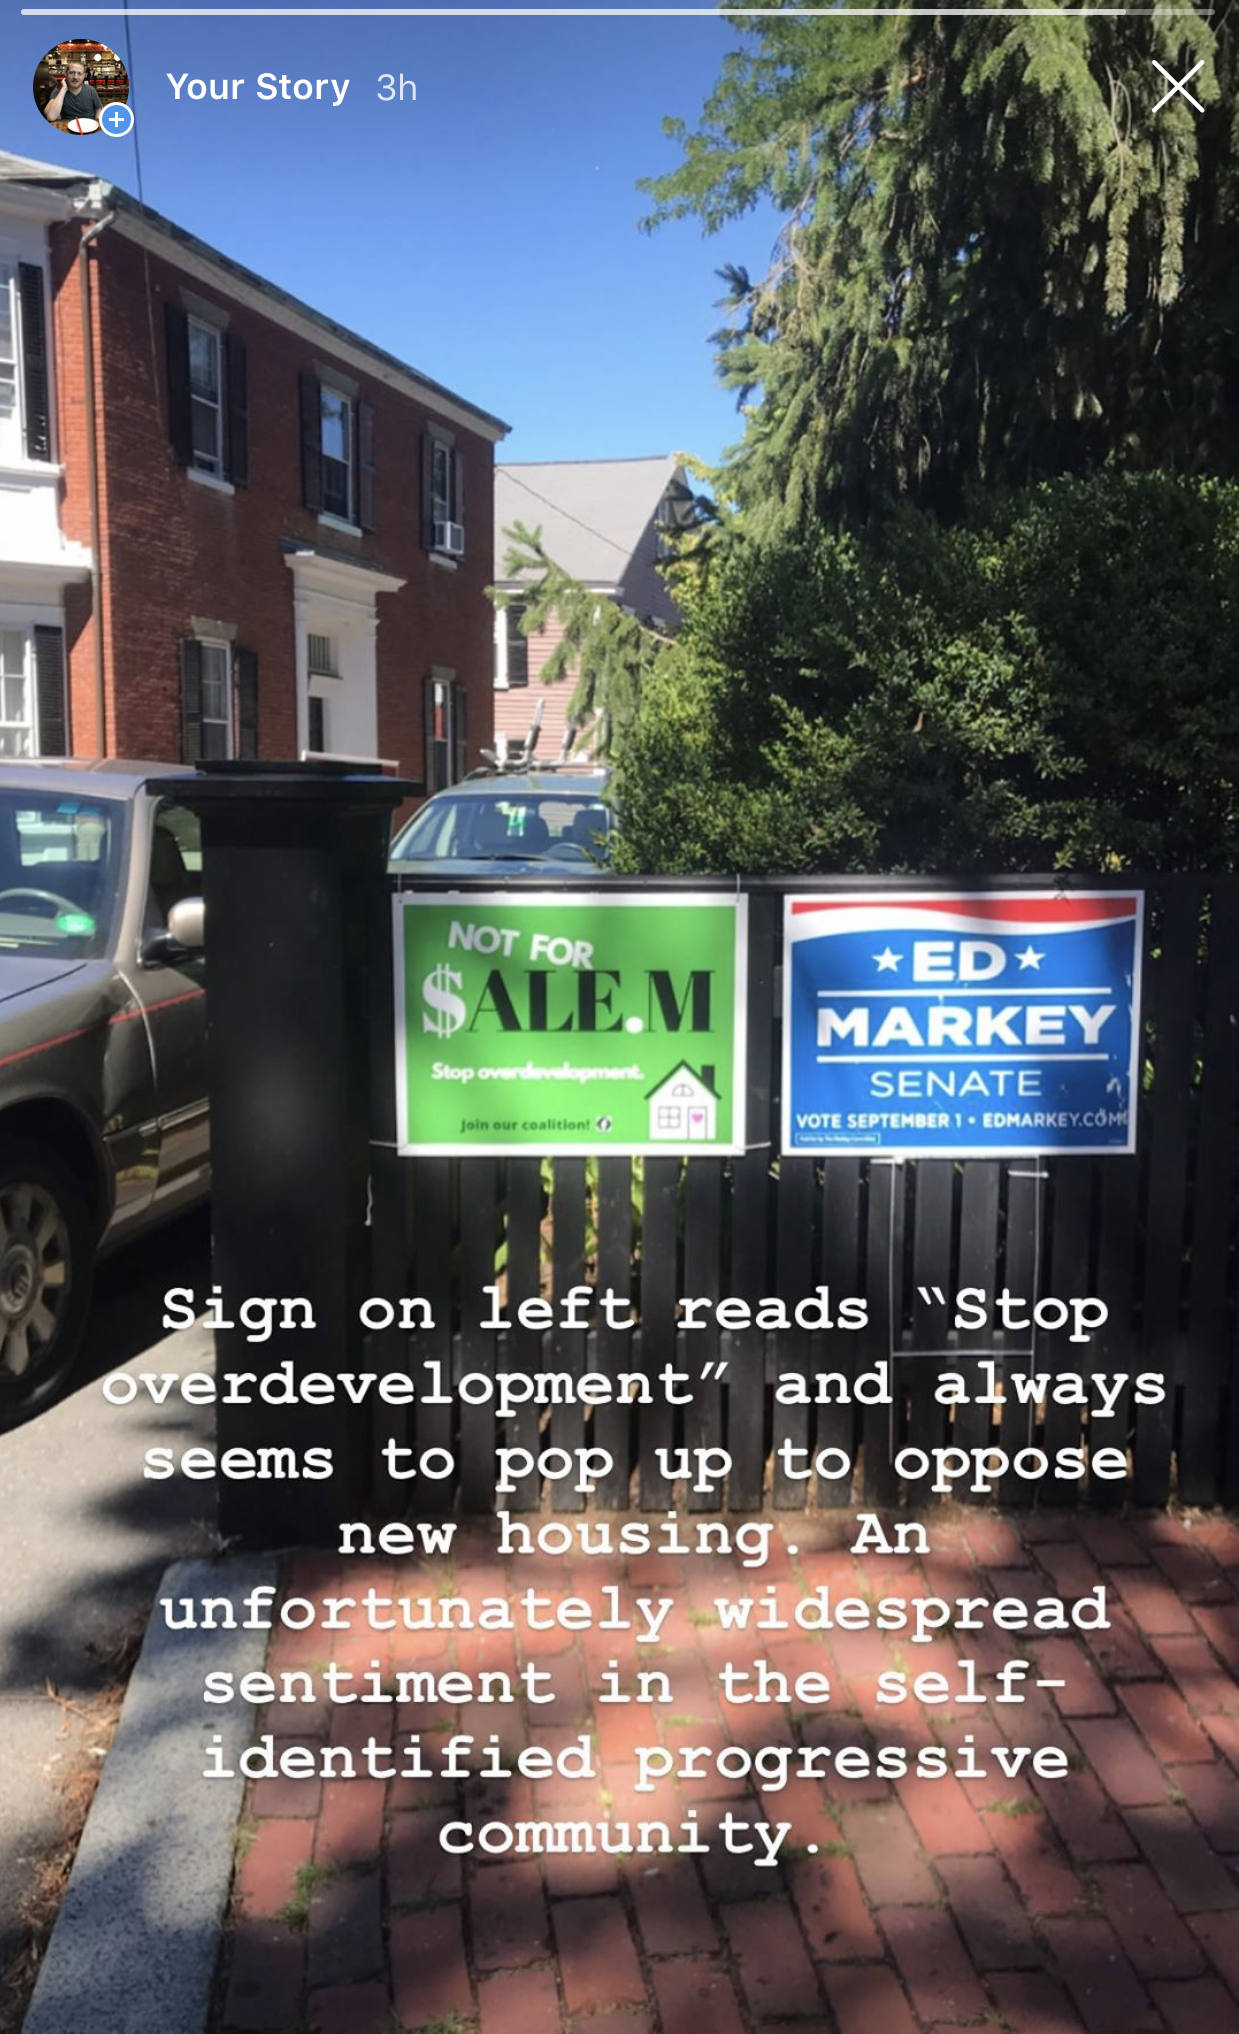 A front gate bearing two political signs; one for Ed Markey and one stating 'Not For $alem / stop overdevelopment / join our coalition' A superimposed Instagram caption reads 'Sign on the left reads 'Stop Overdevelopment' and always seems to pop up to oppose new housing. An unfortunately widespread sentiment in the self-identified progressive community'